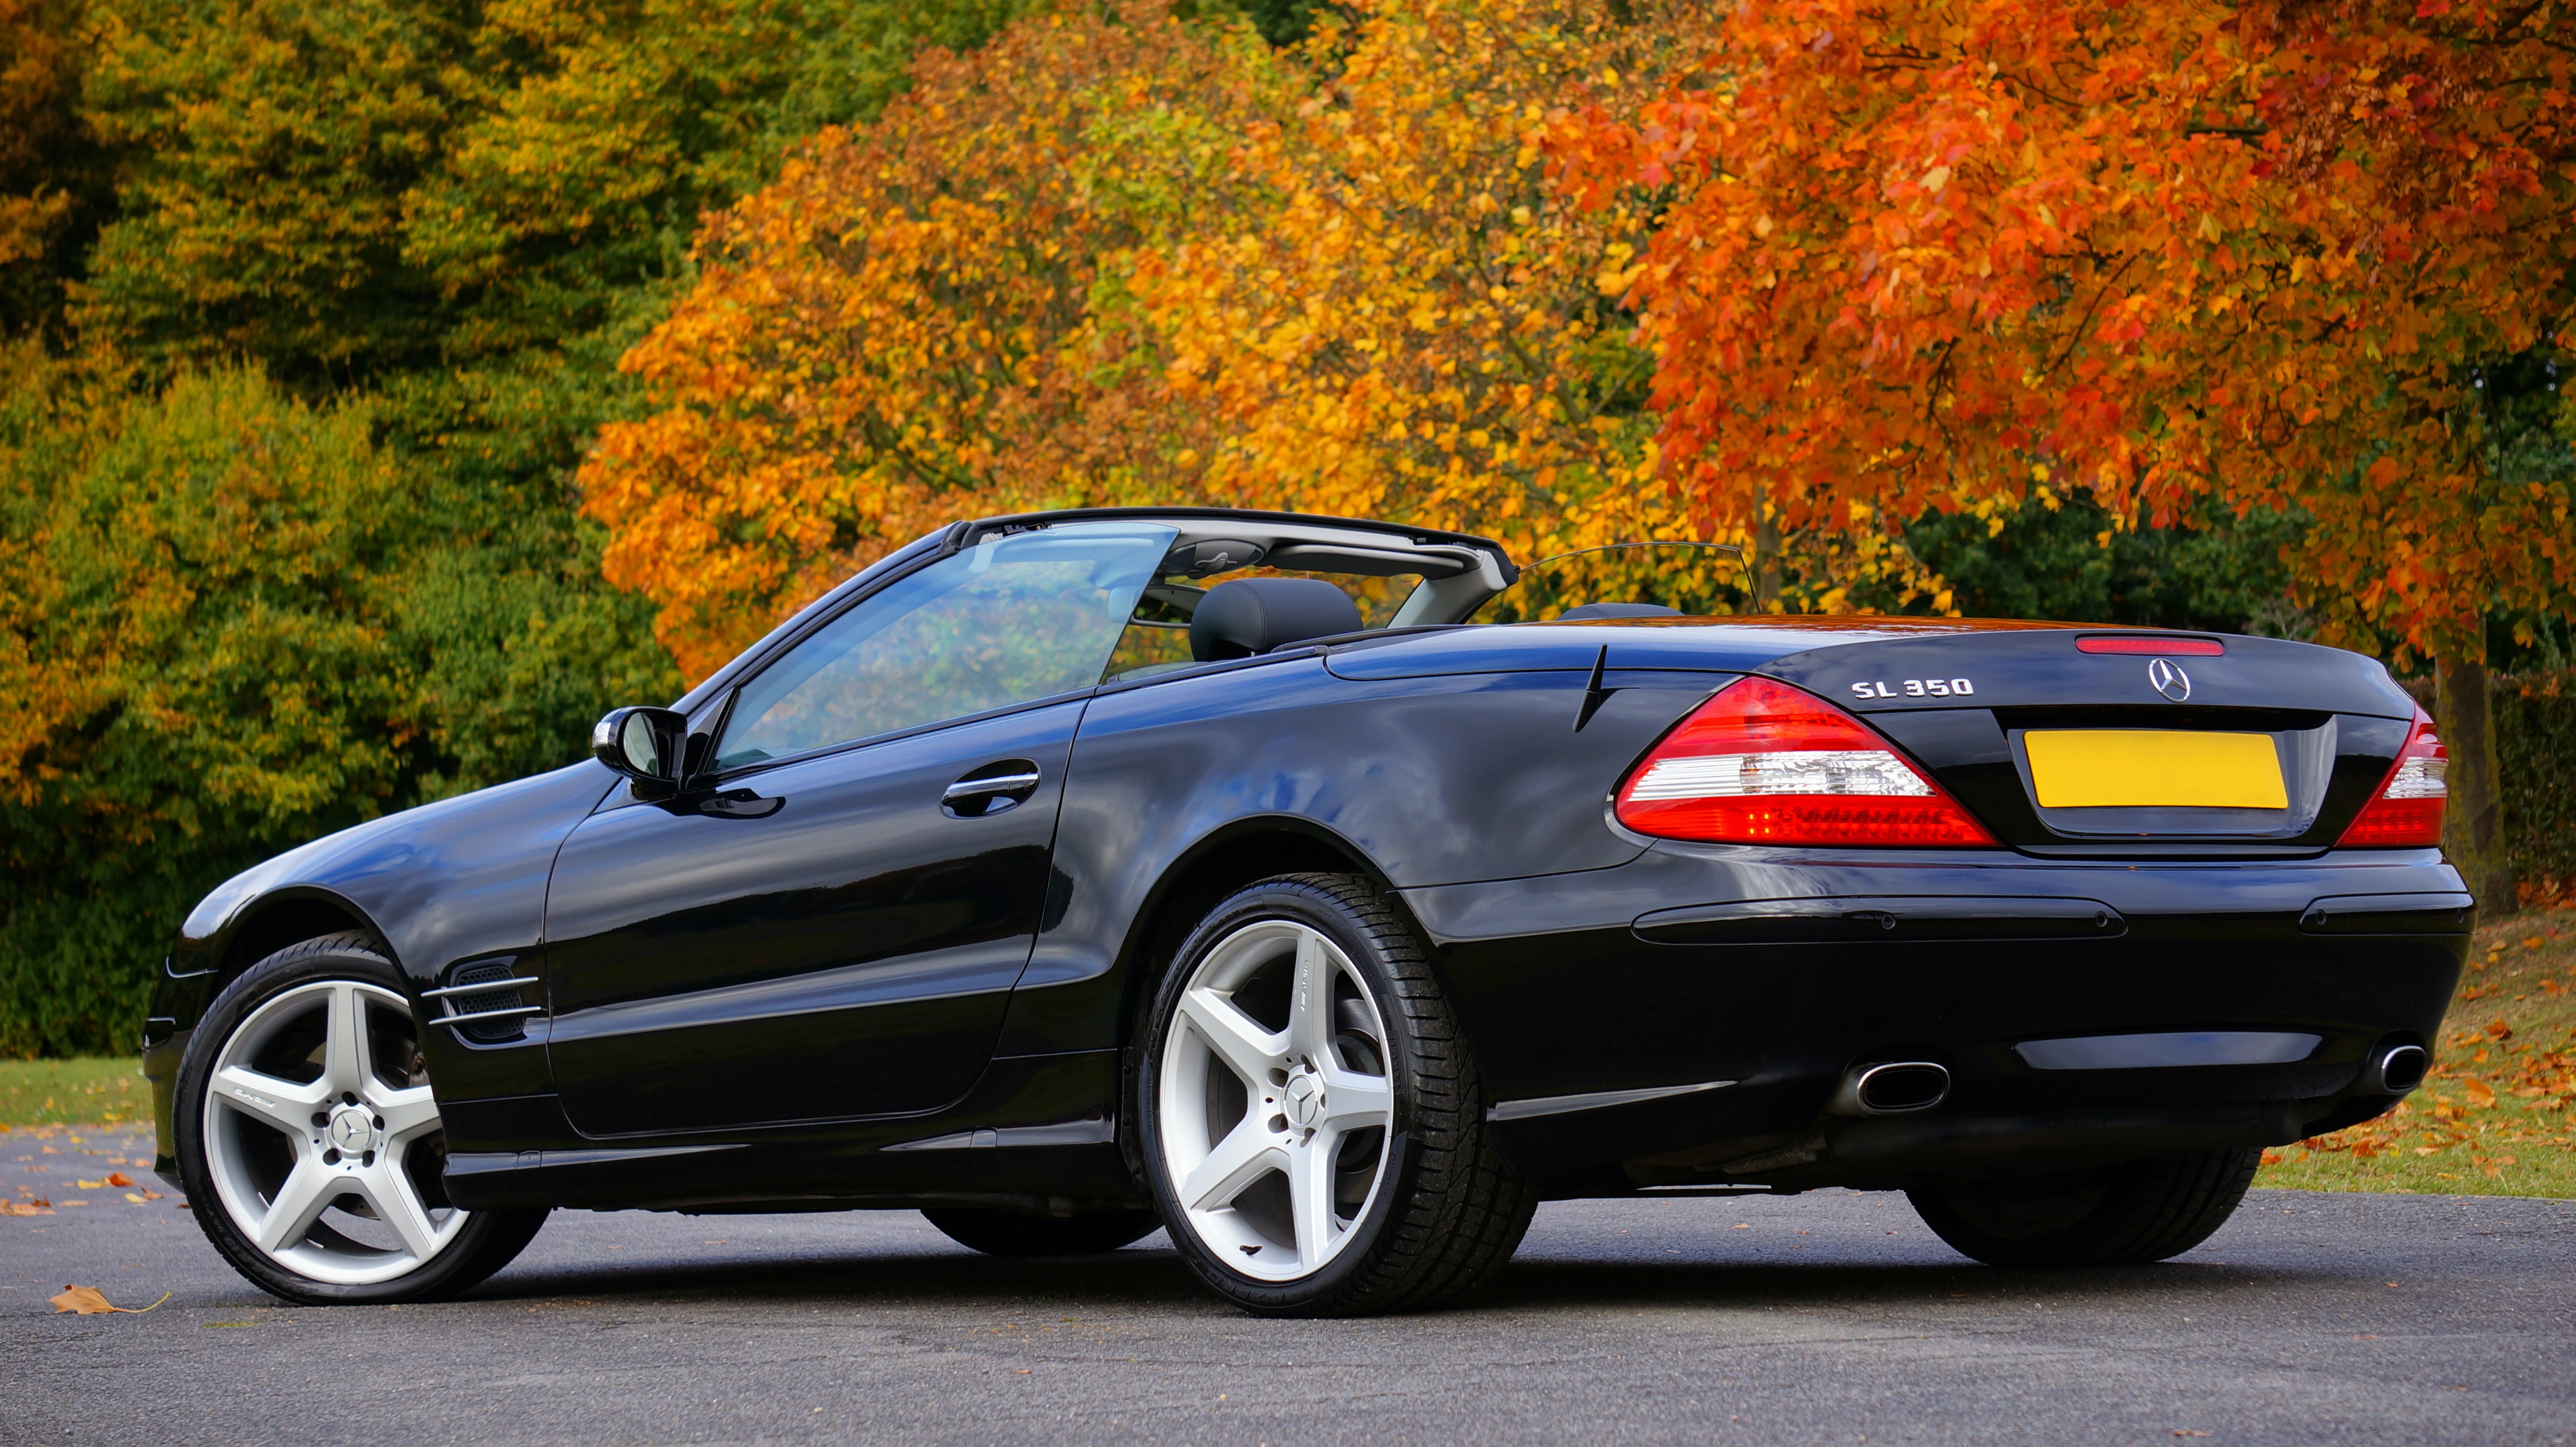 fun benz mercedes the amg review cars bring hero drive cabriolet in new s noise da convertible